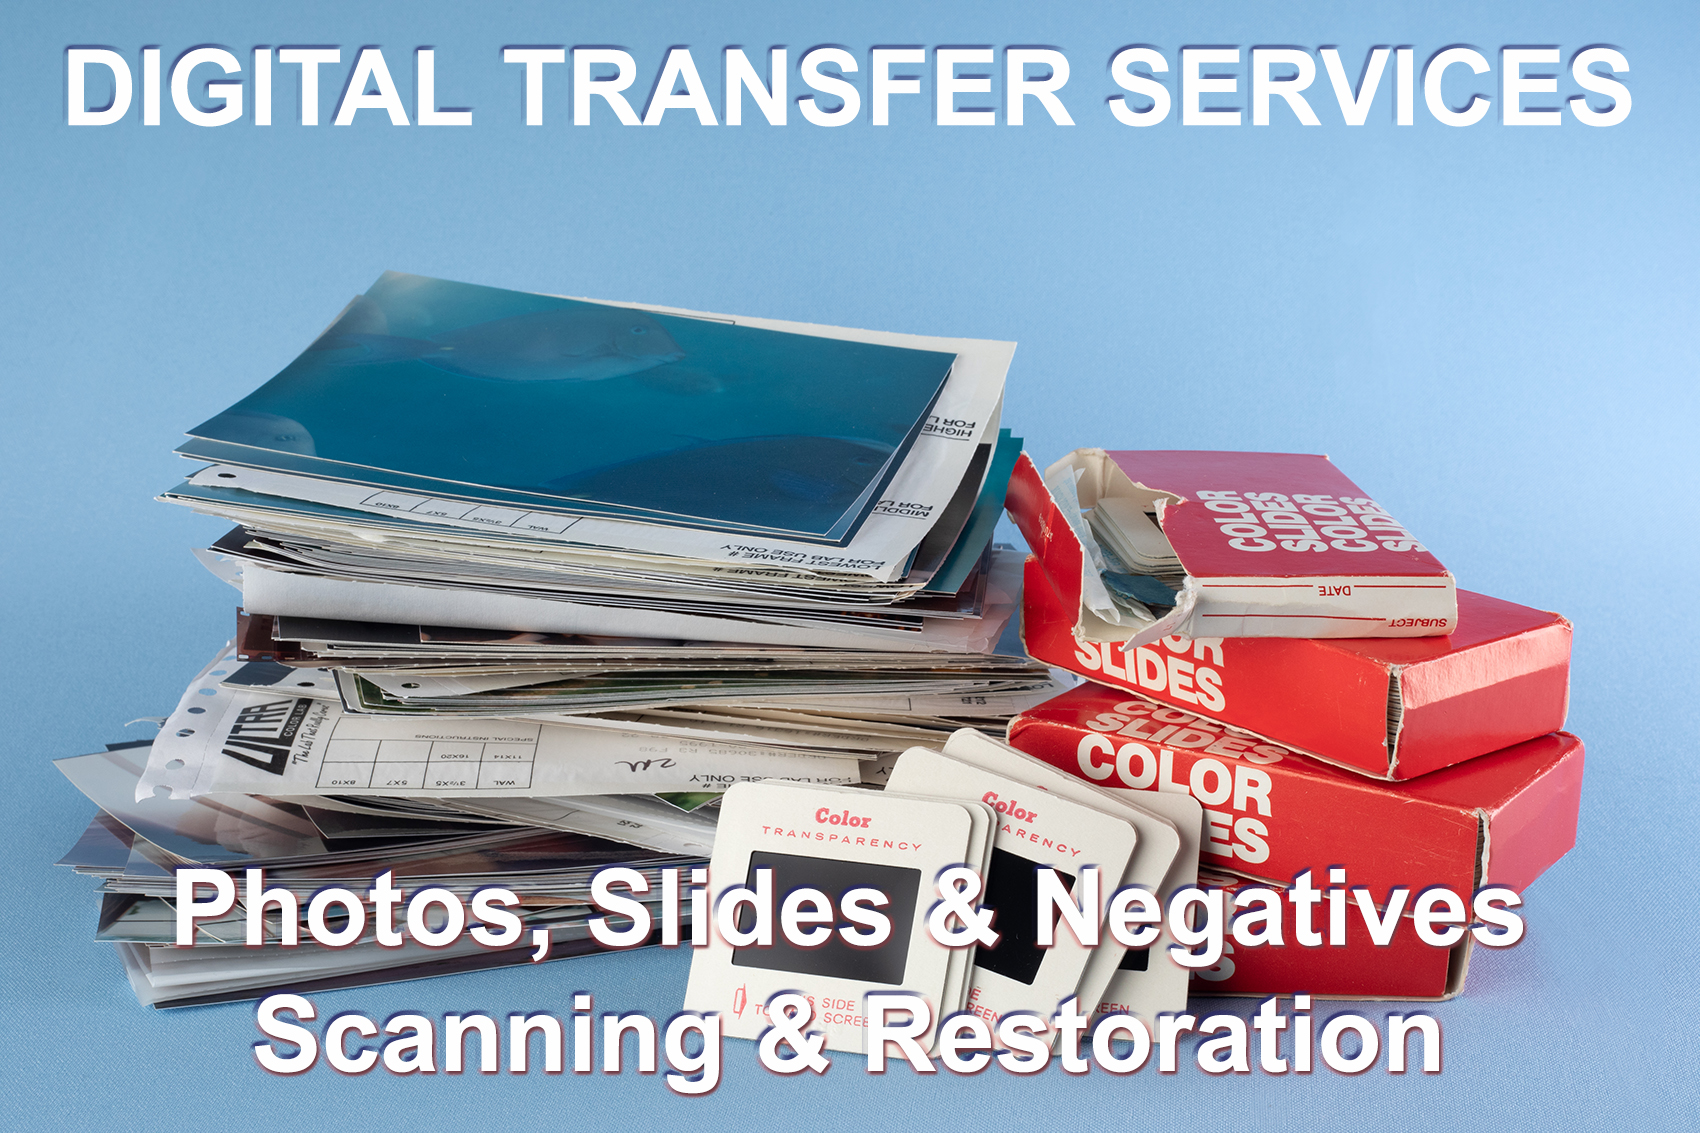 Digital Transfer Service -Photos, Slides, Slide Show Creation, film negatives scanning to video & photo restoration